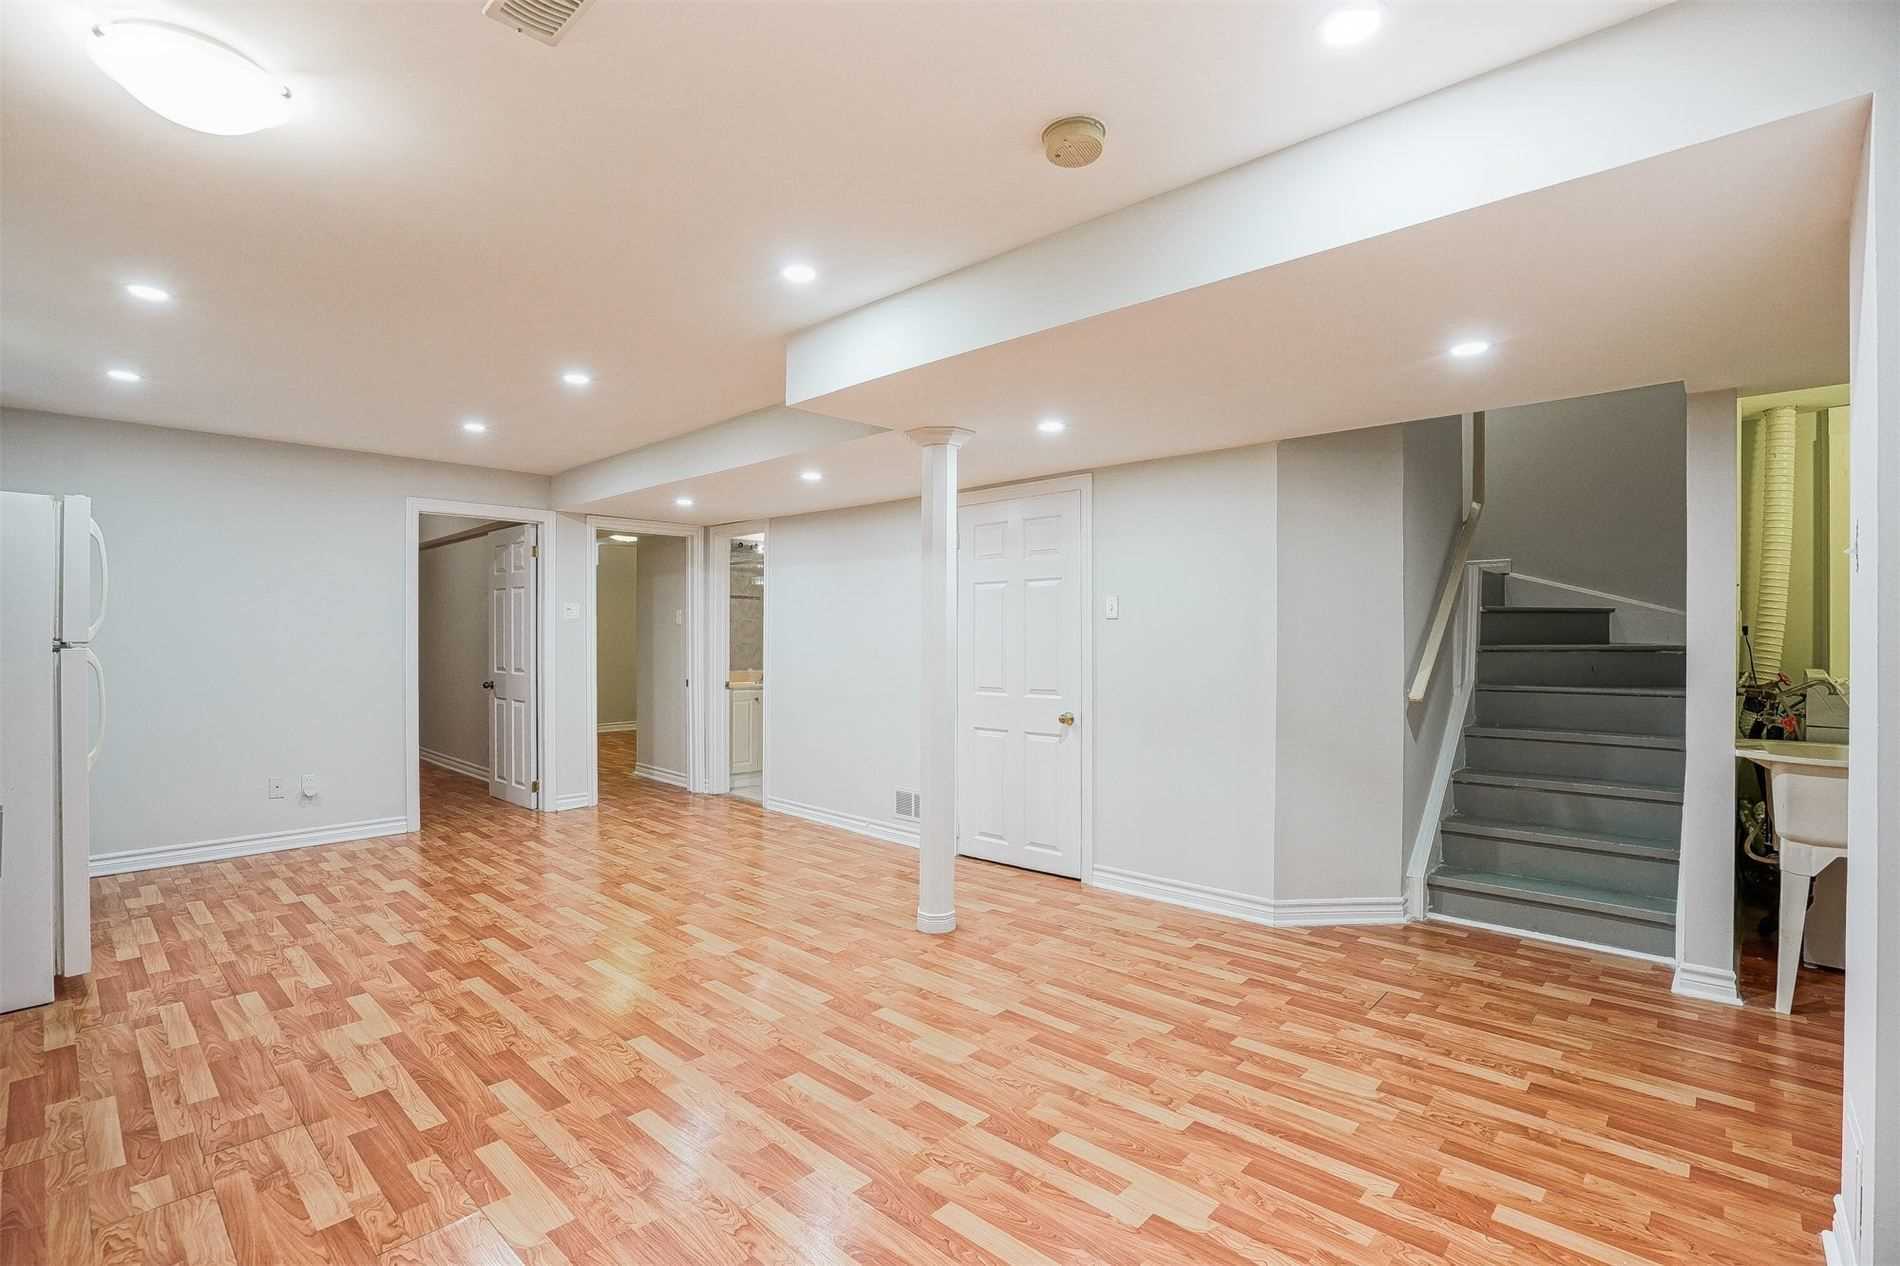 Detached house For Lease In Toronto - 183 Shepton Way, Toronto, Ontario, Canada M1V5N4 , 2 Bedrooms Bedrooms, ,1 BathroomBathrooms,Detached,For Lease,(Lower,Shepton